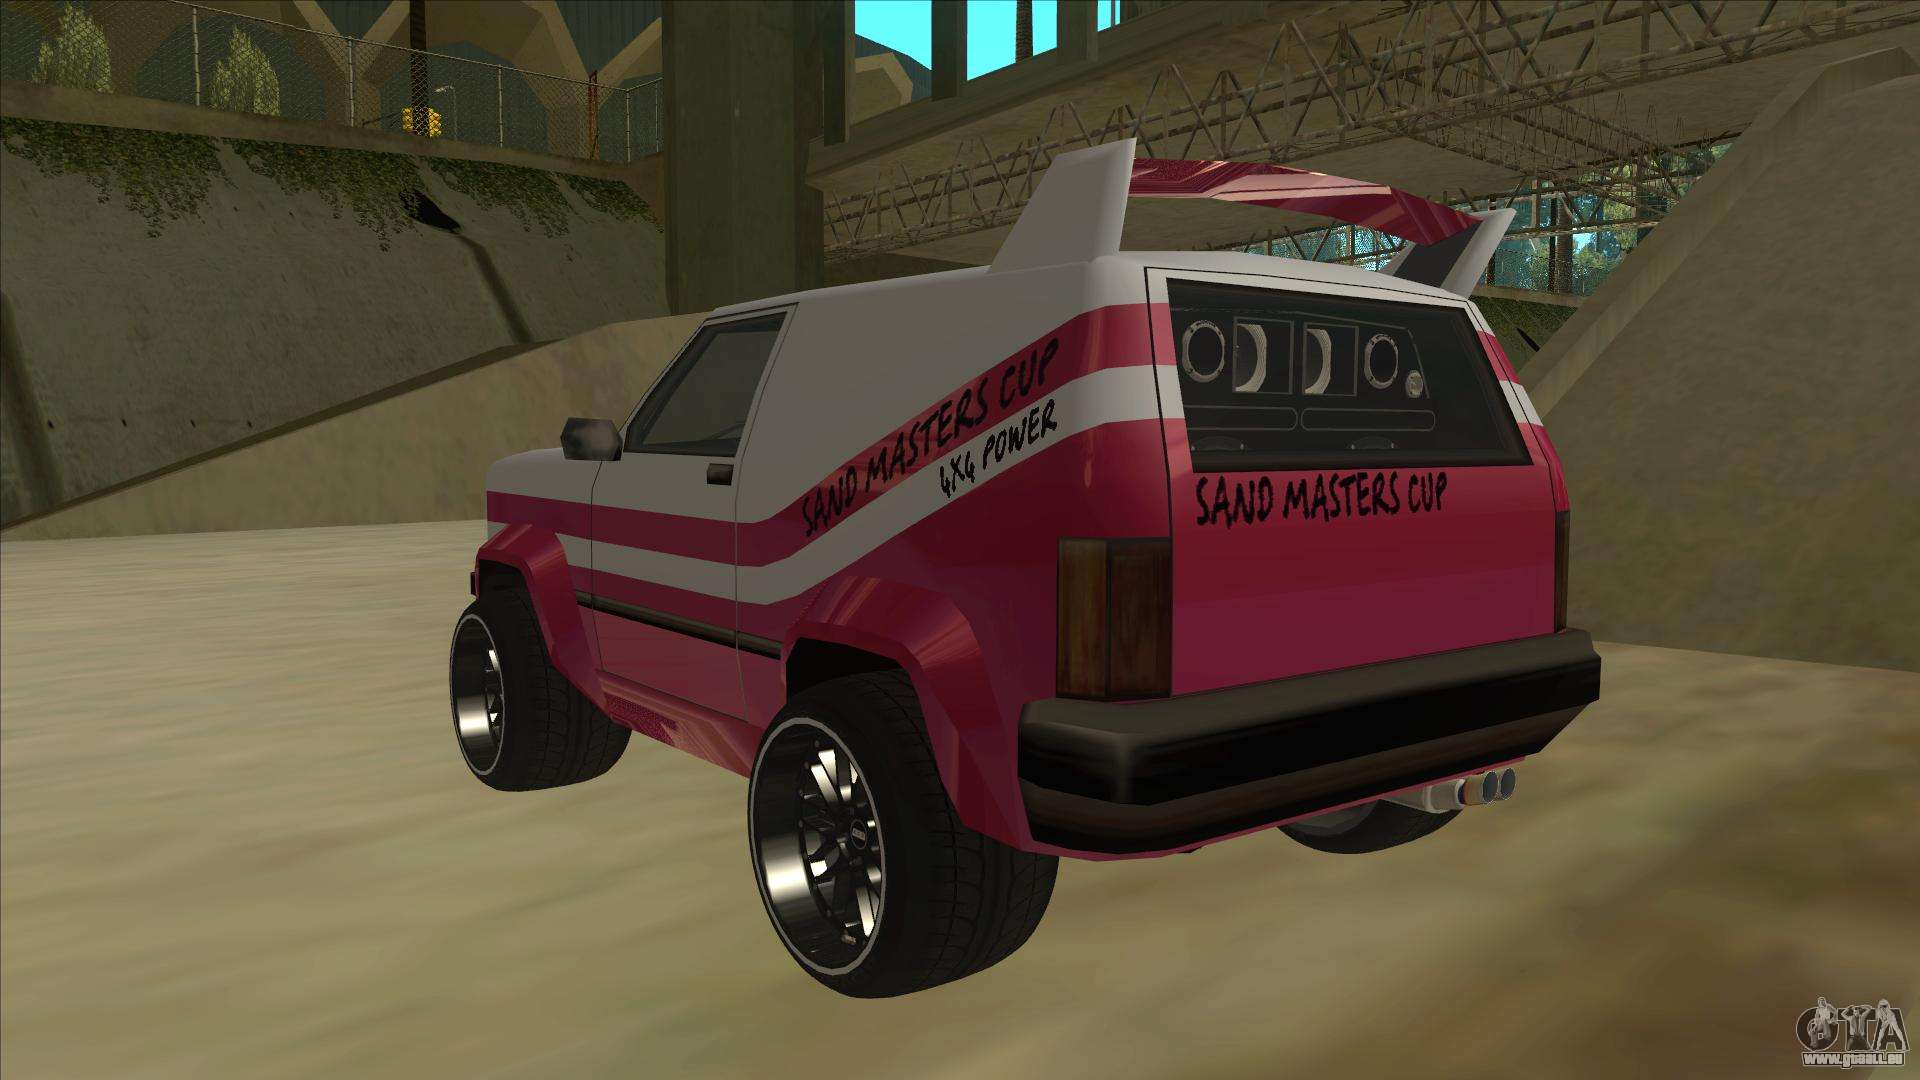 Front quarter view of an oceanic in gta: san andreas